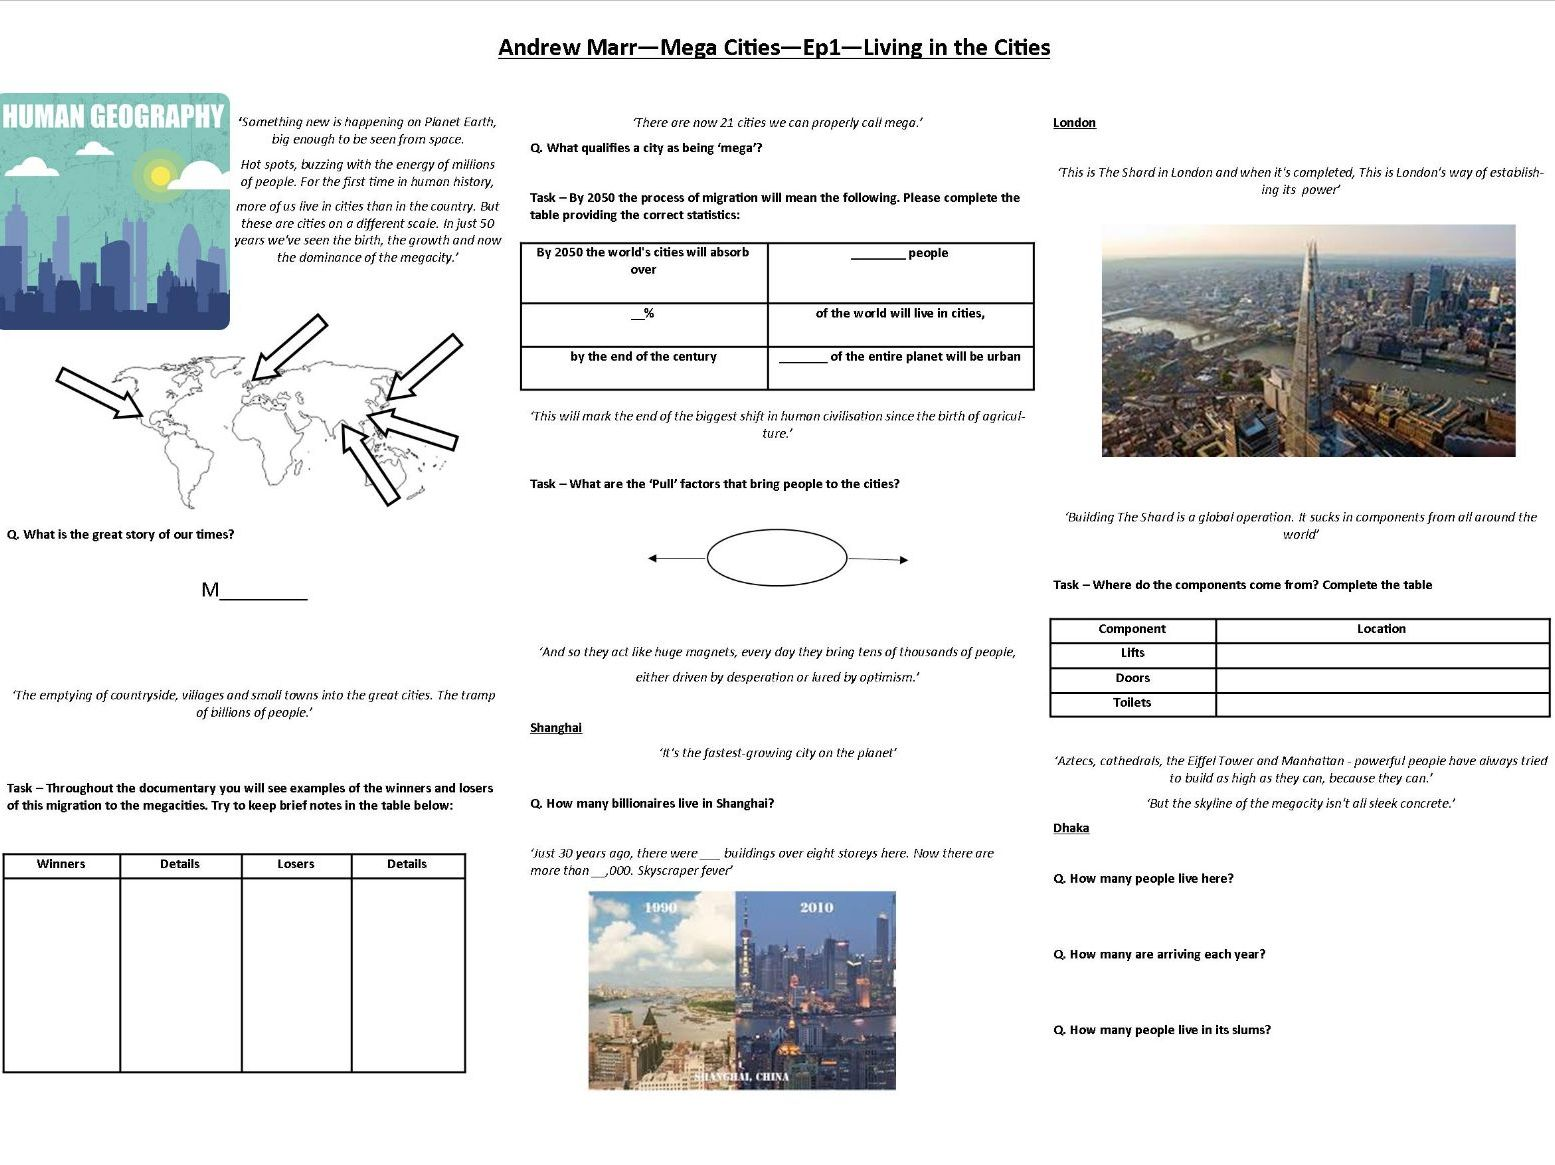 Andrew Marr - Mega Cities - Worksheets to support the BBC TV Documentary